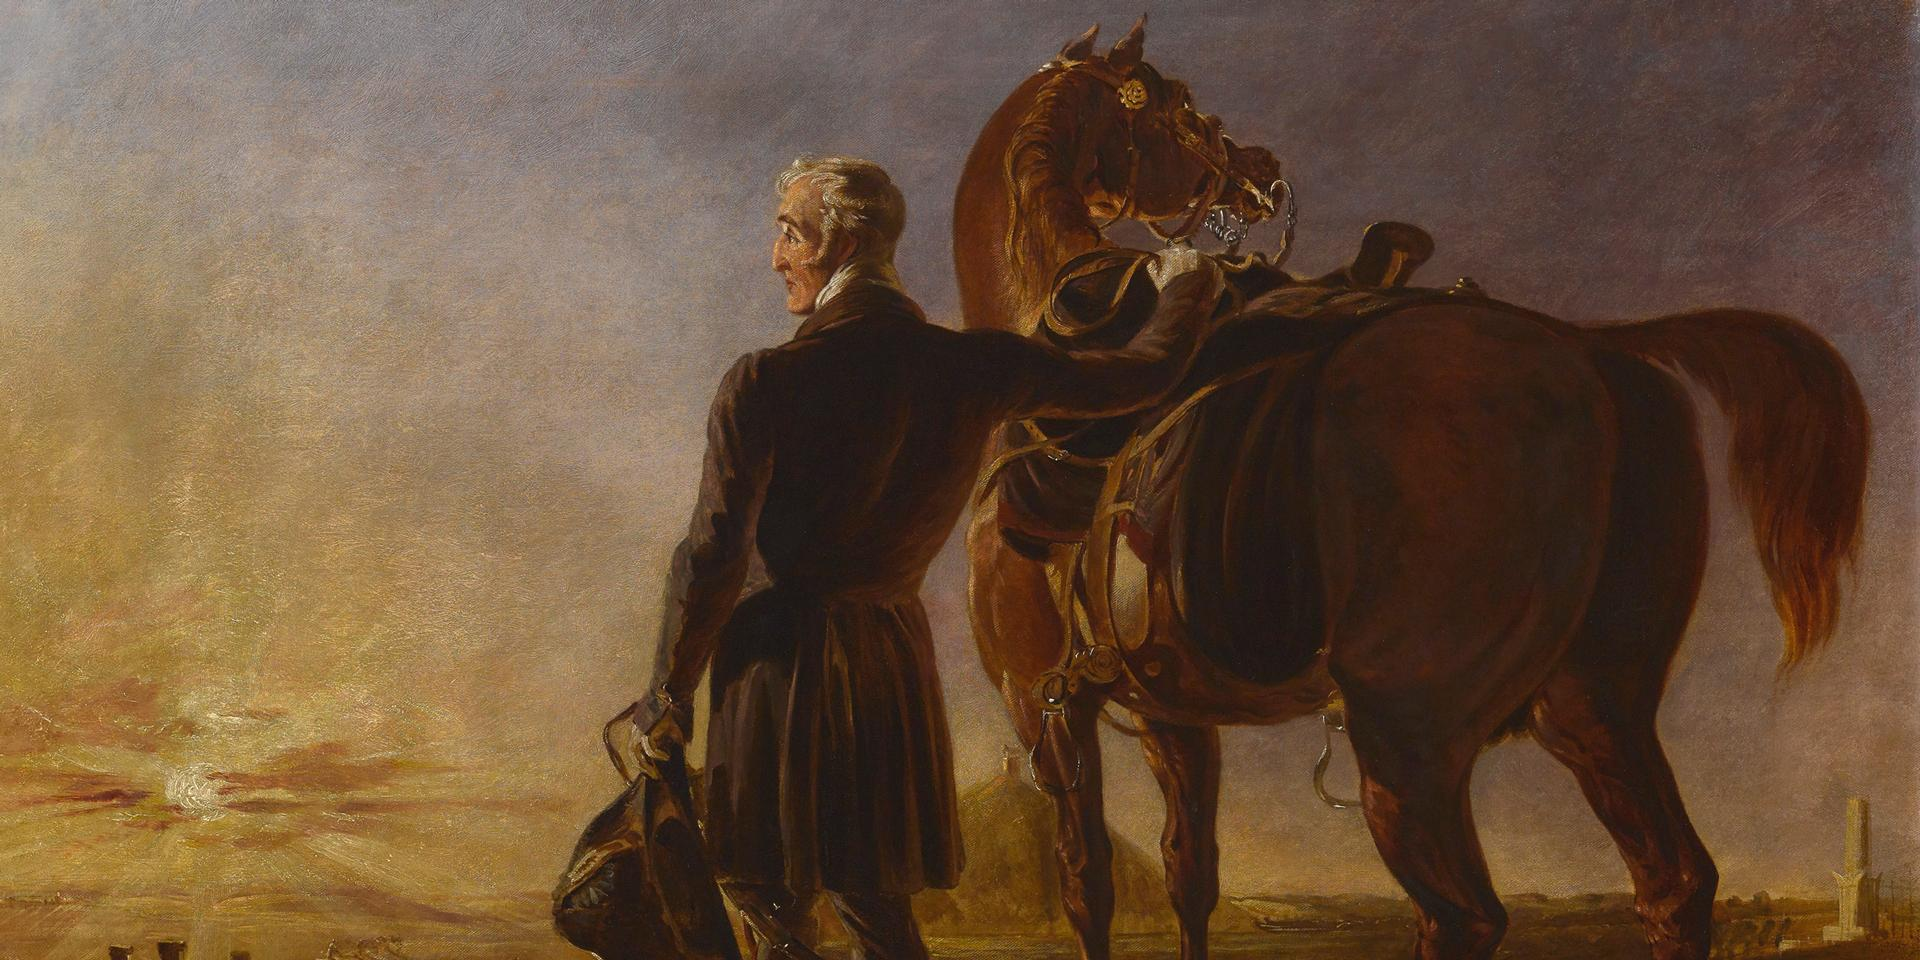 The Duke of Wellington as an old man surveying the battlefield of Waterloo with Copenhagen, painted in 1840